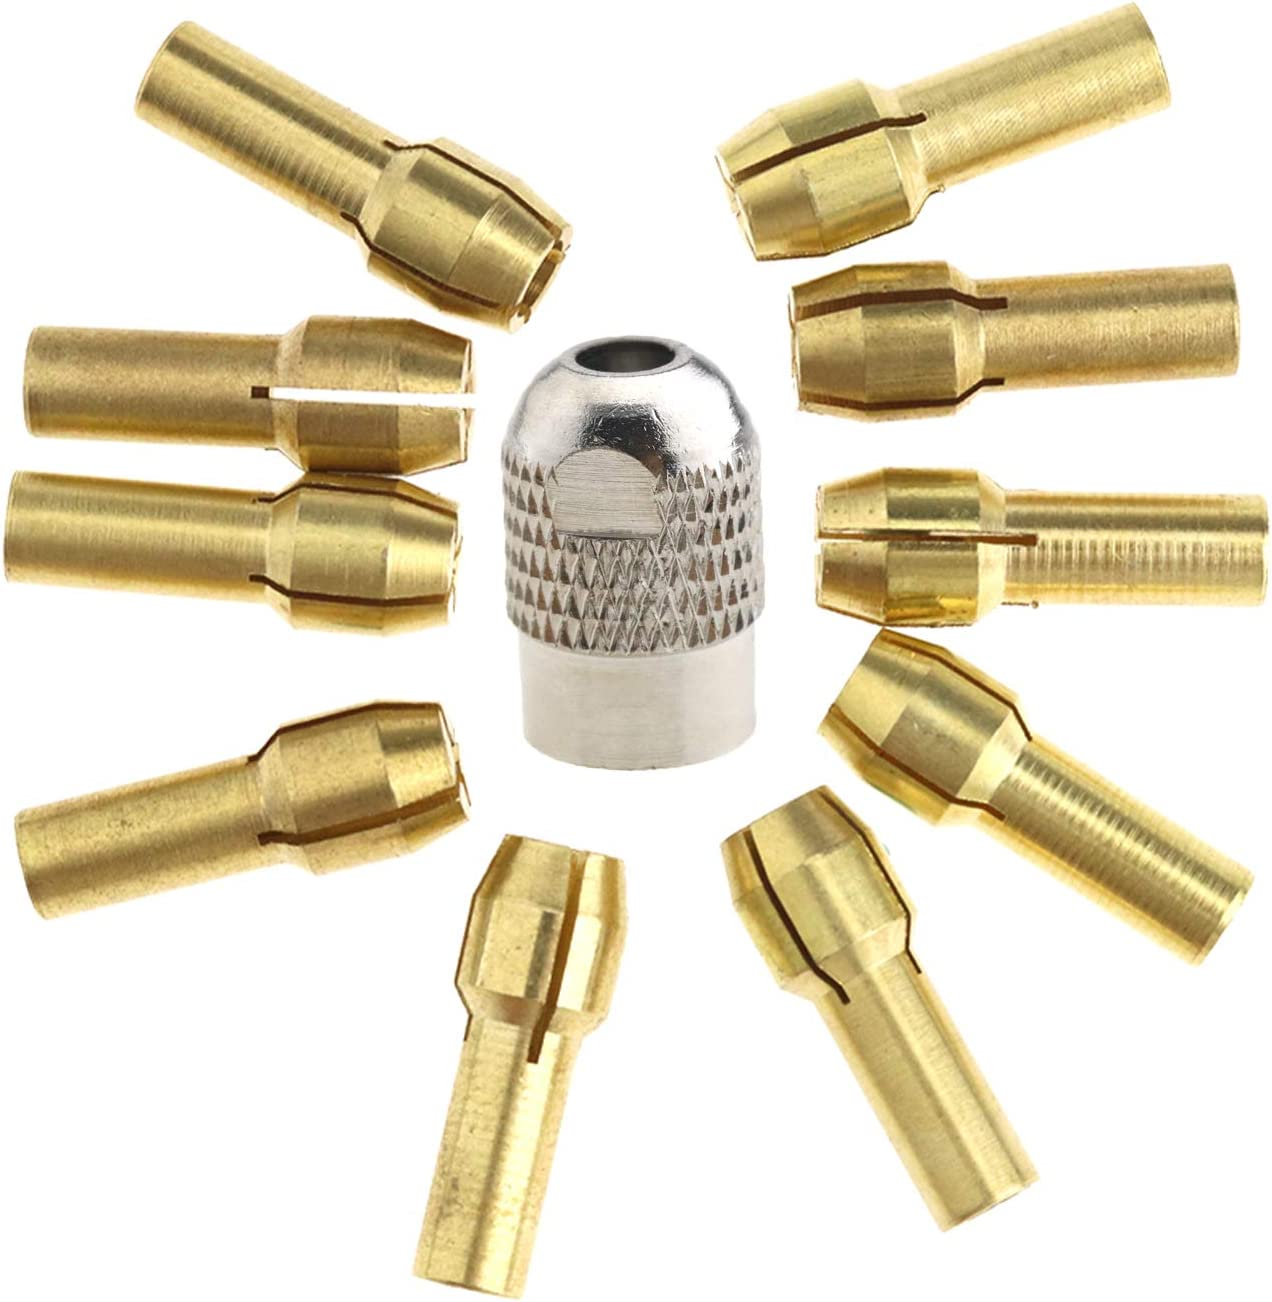 10pcs Brass Collet Bit 1pc M8 Drill Chuck 0.5-3.2mm Compatible with Dremel E Rotary Tools